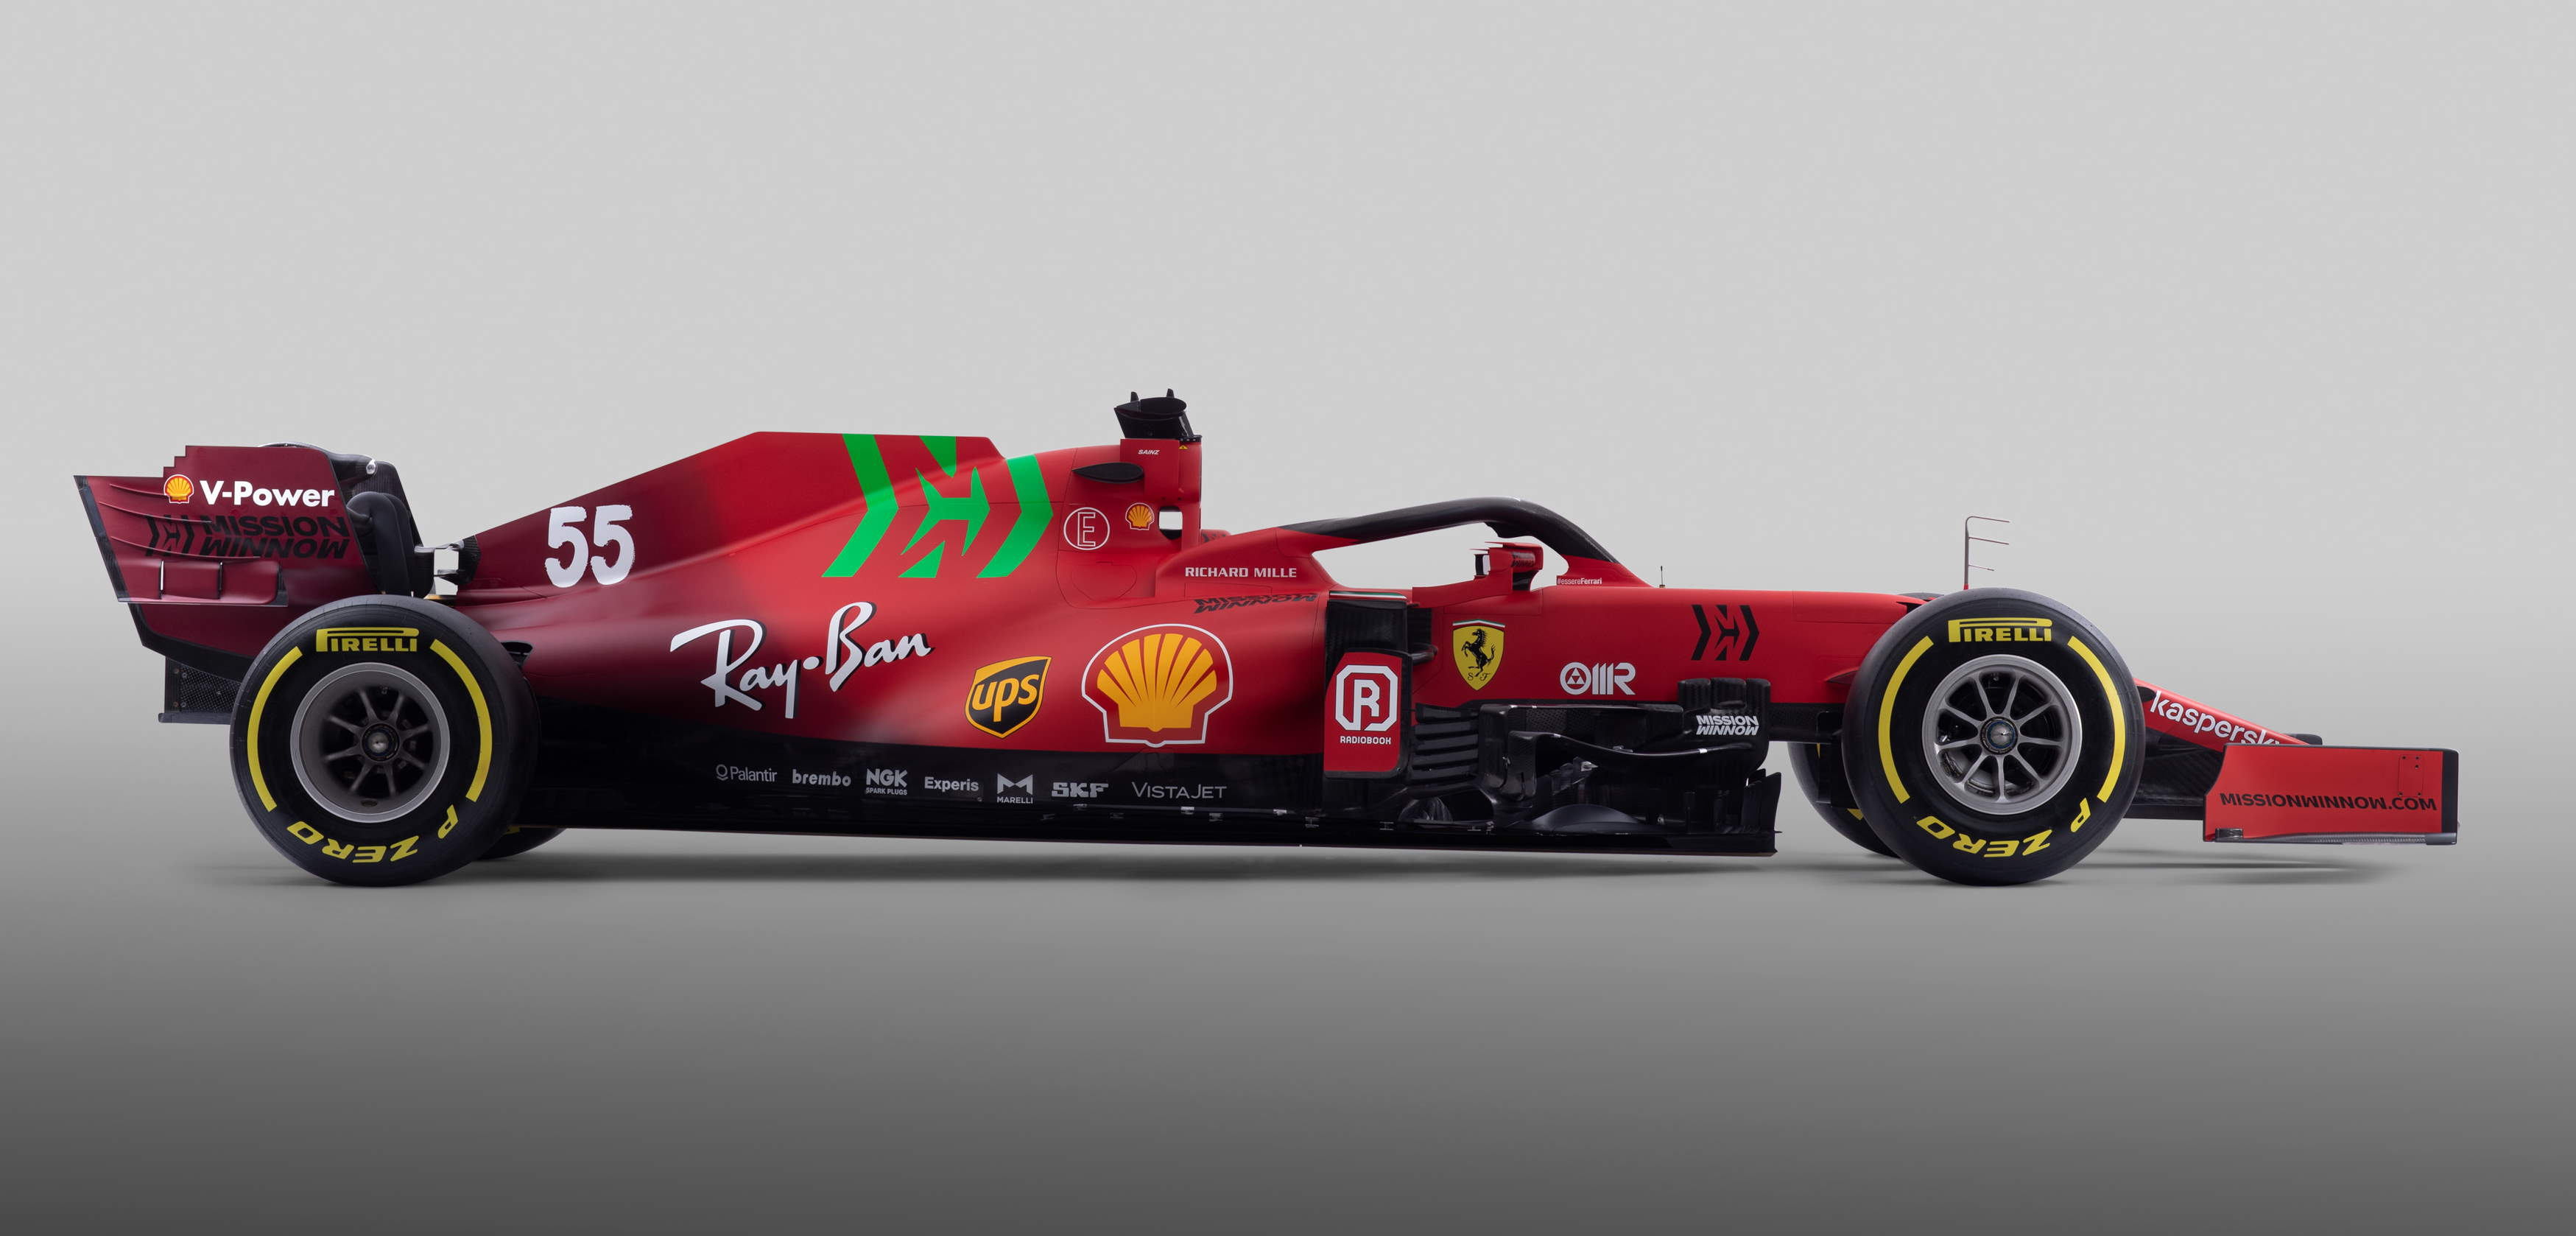 2021 Ferrari SF21 studio photo side view Photo Ferrari